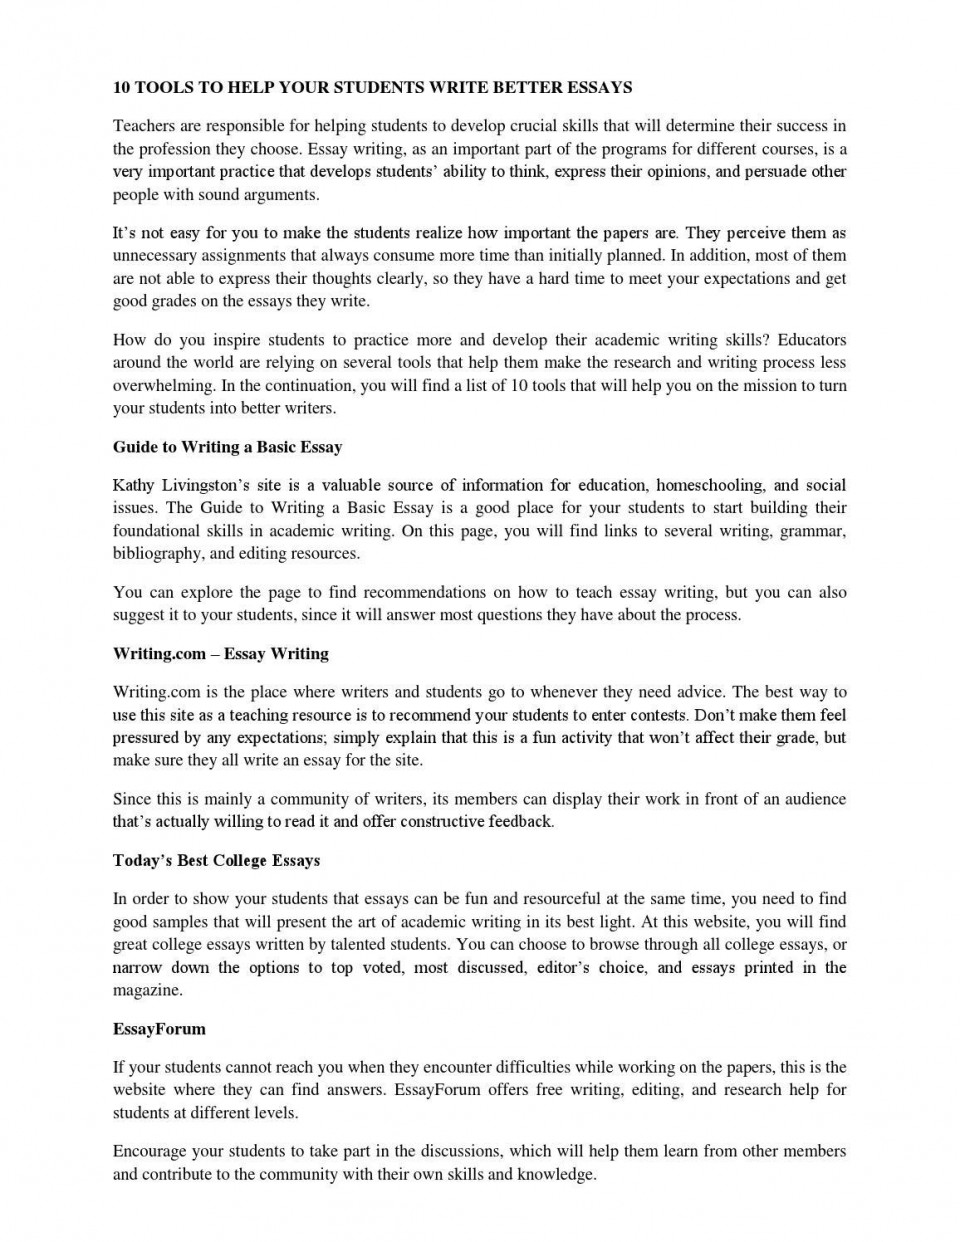 011 Research Paper Essay Writing Websites Reviews For Students Editing Free Page Example Best Services Academic Jobs Software 960